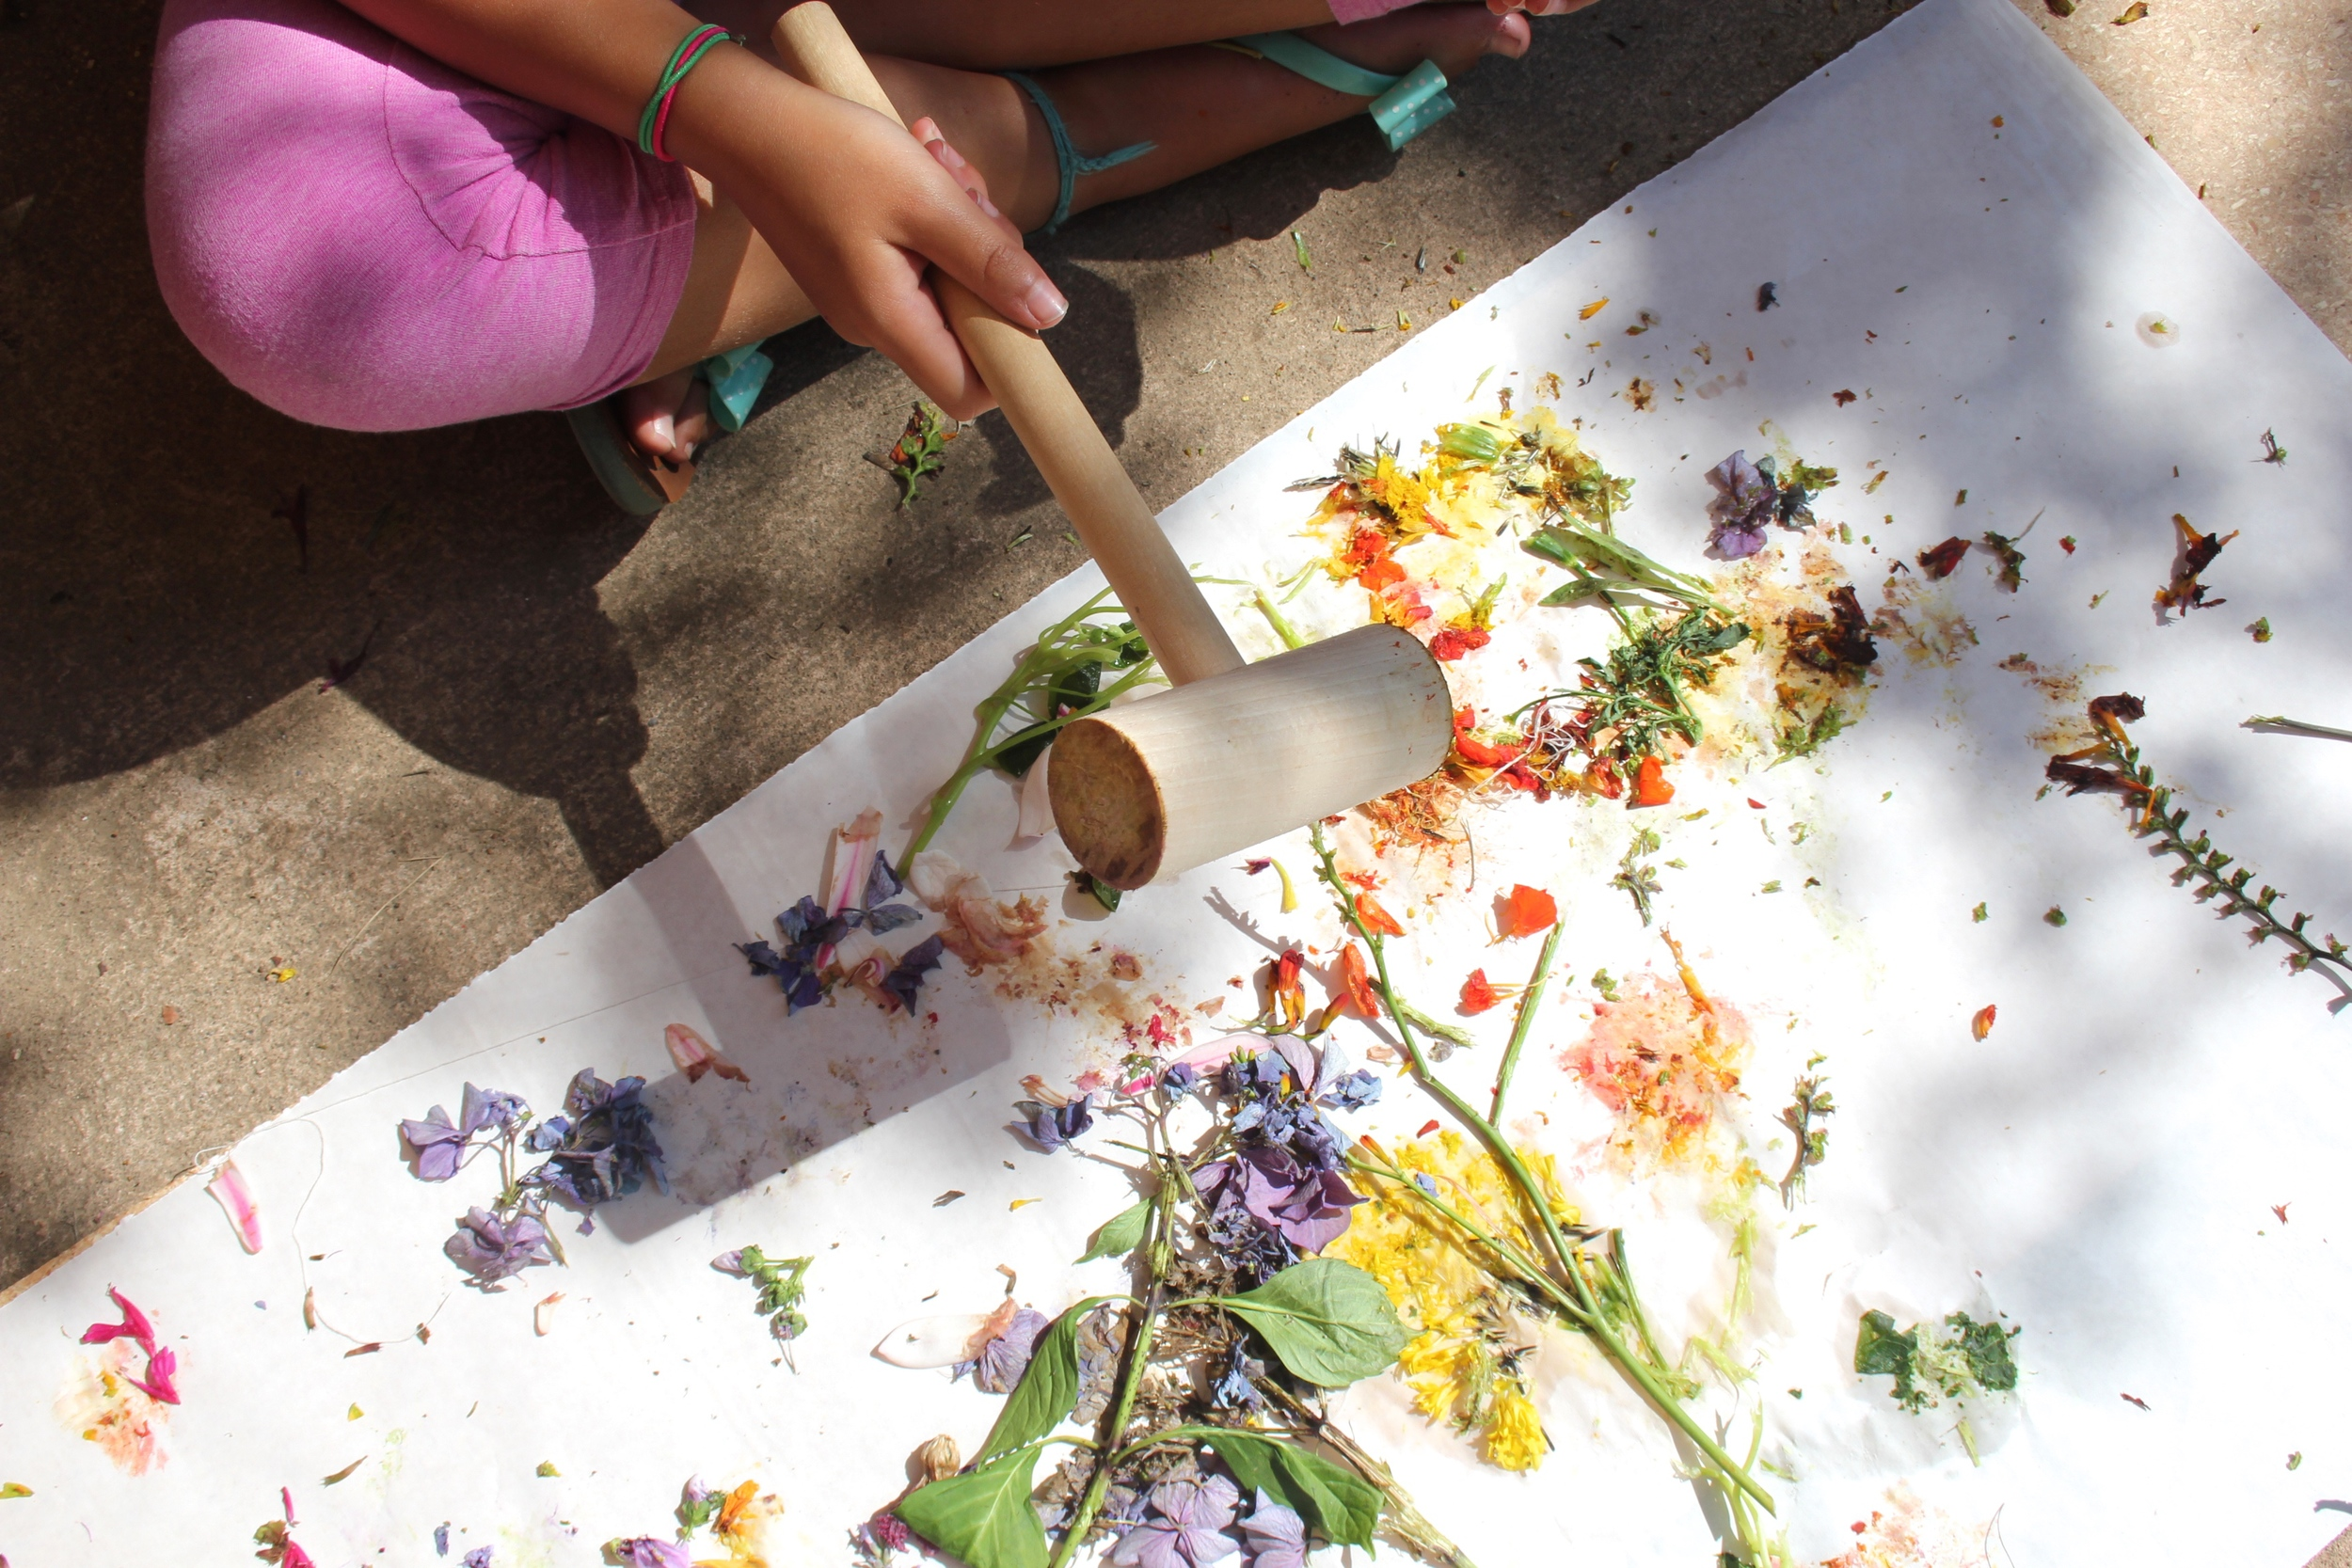 Having a bad day? Grab a mallet and practice the zen art of flower smashing....